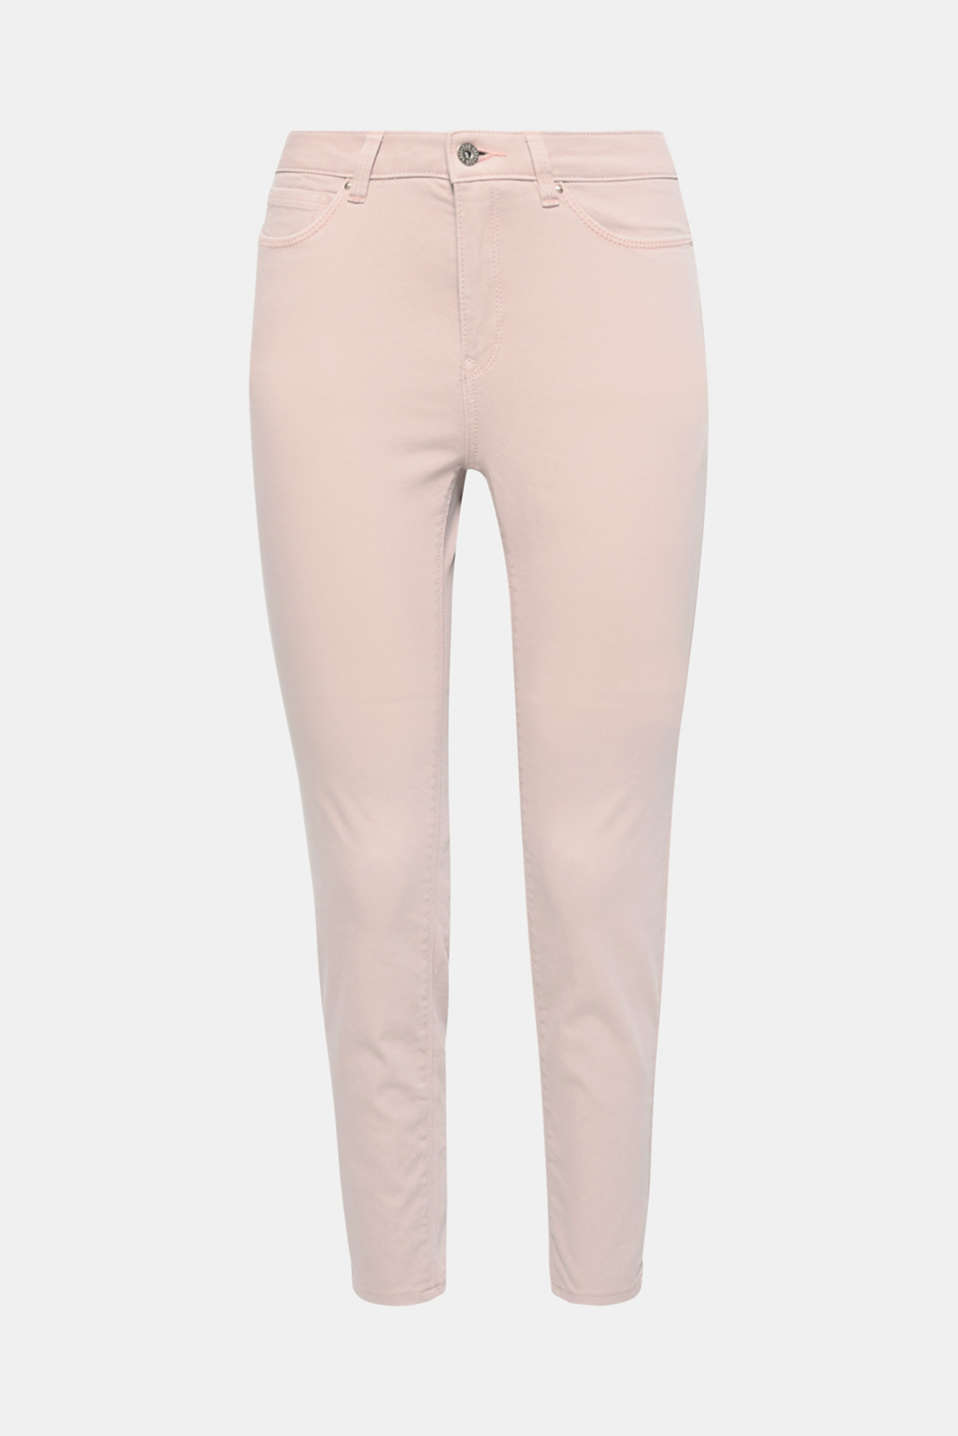 These stretchy cotton trousers in a trendy ankle length are an essential basic.